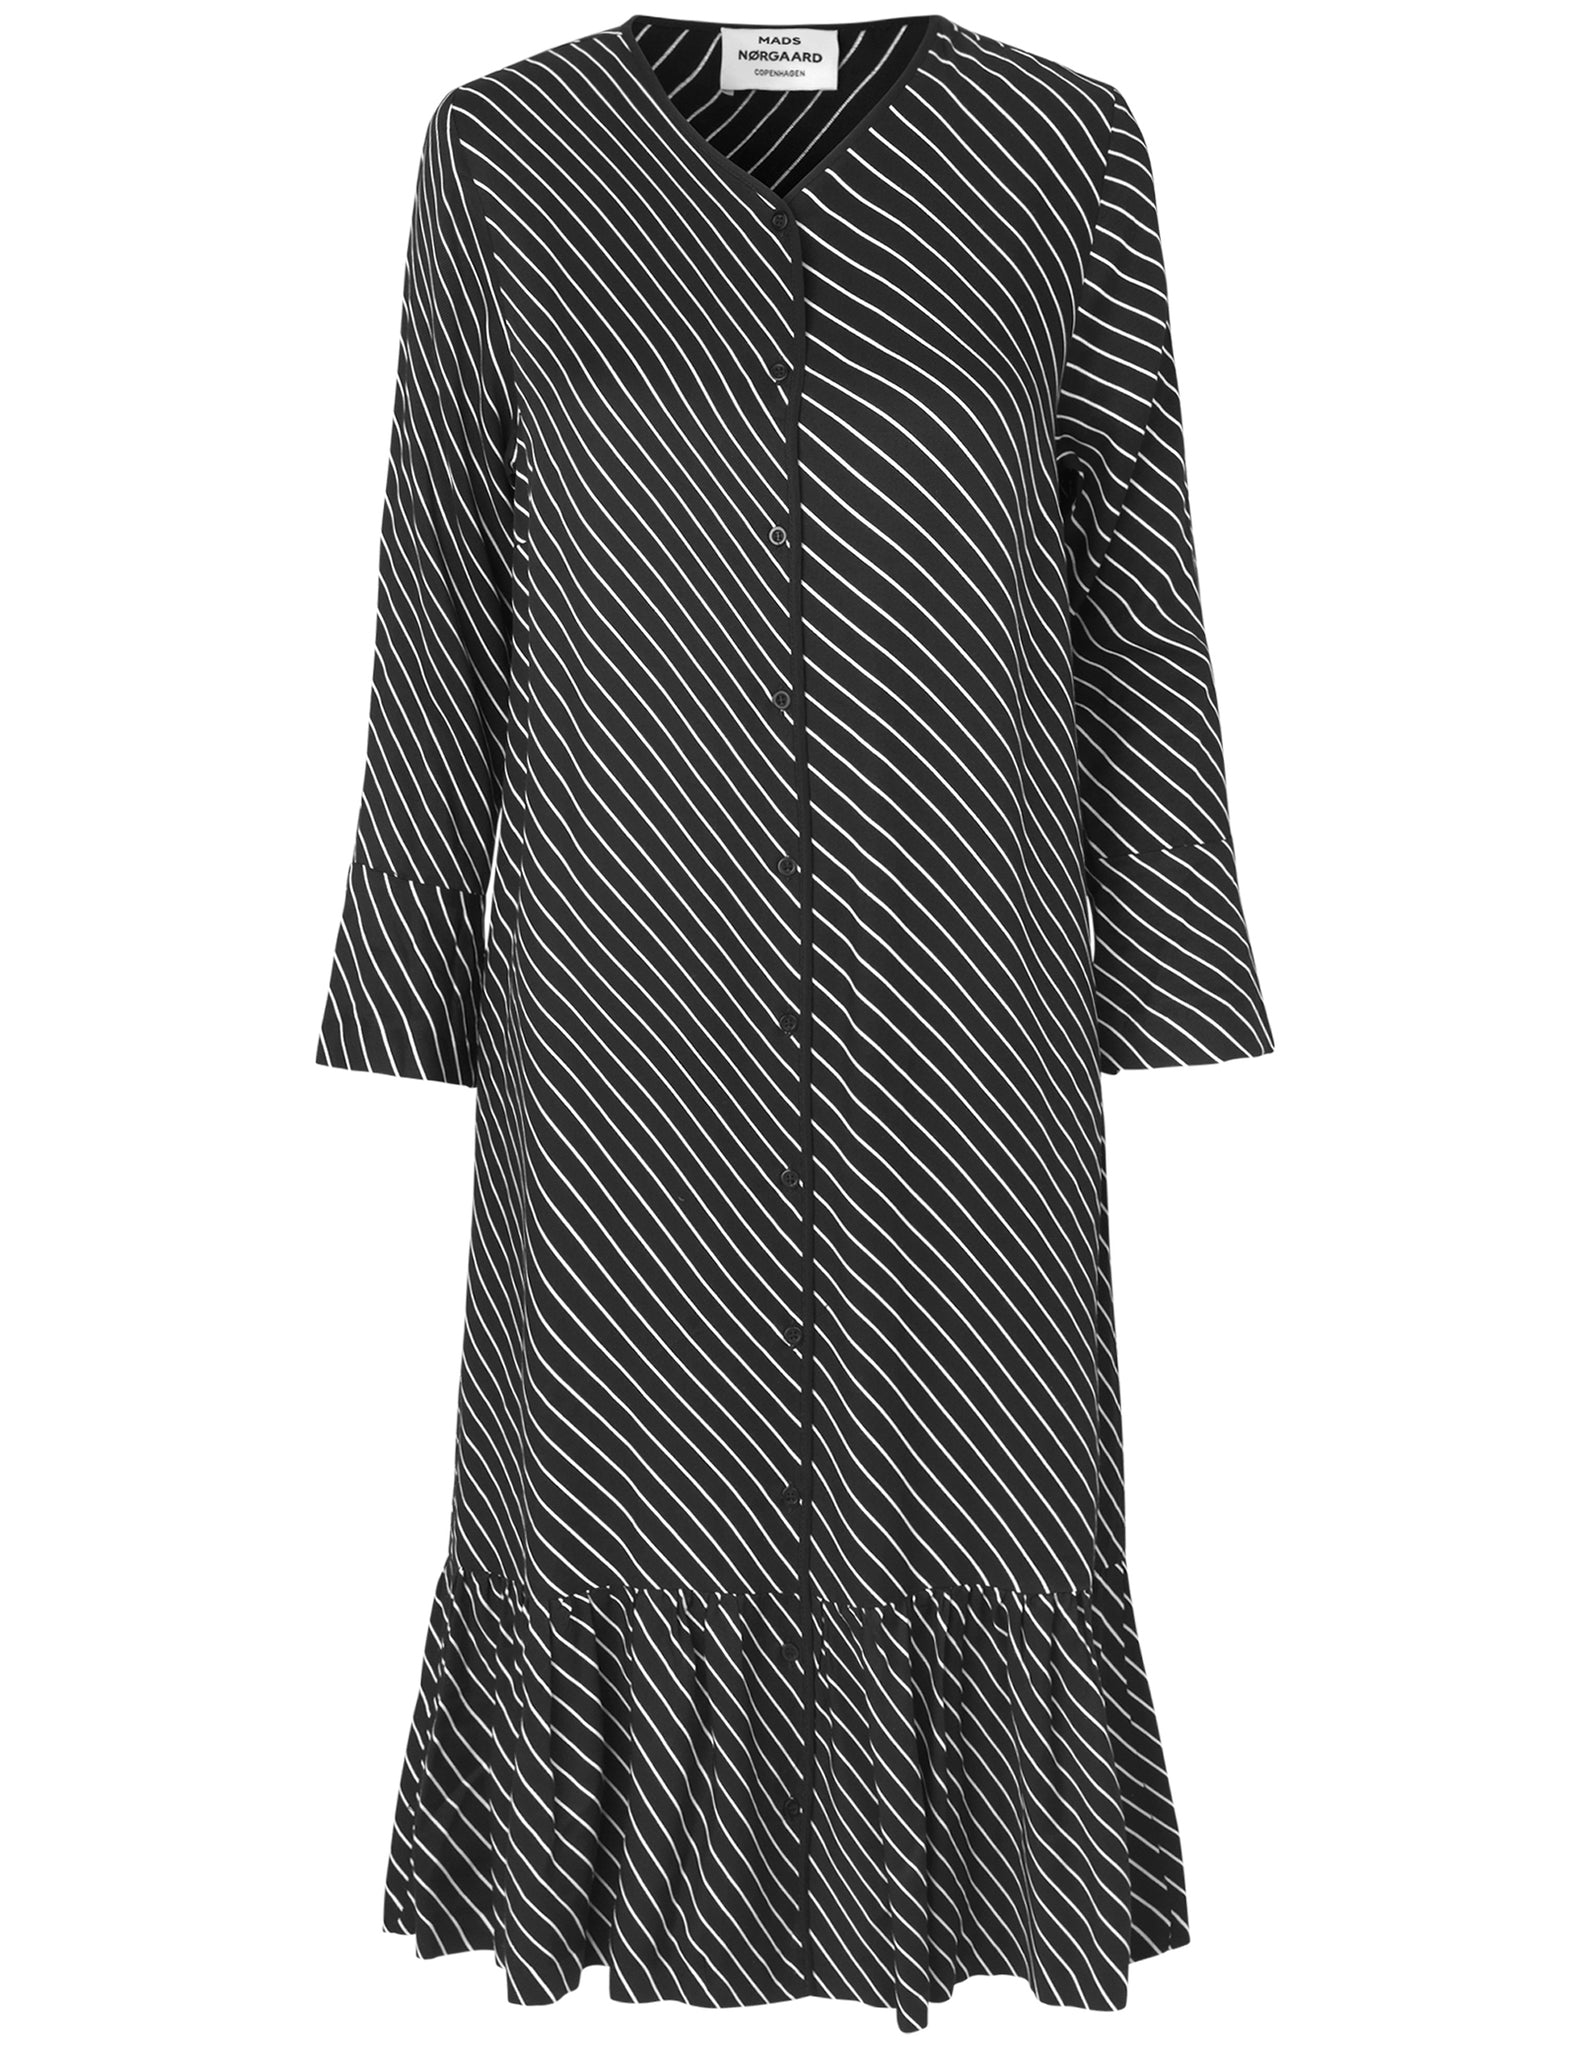 MADS NORGAARD Dadina Dress, black